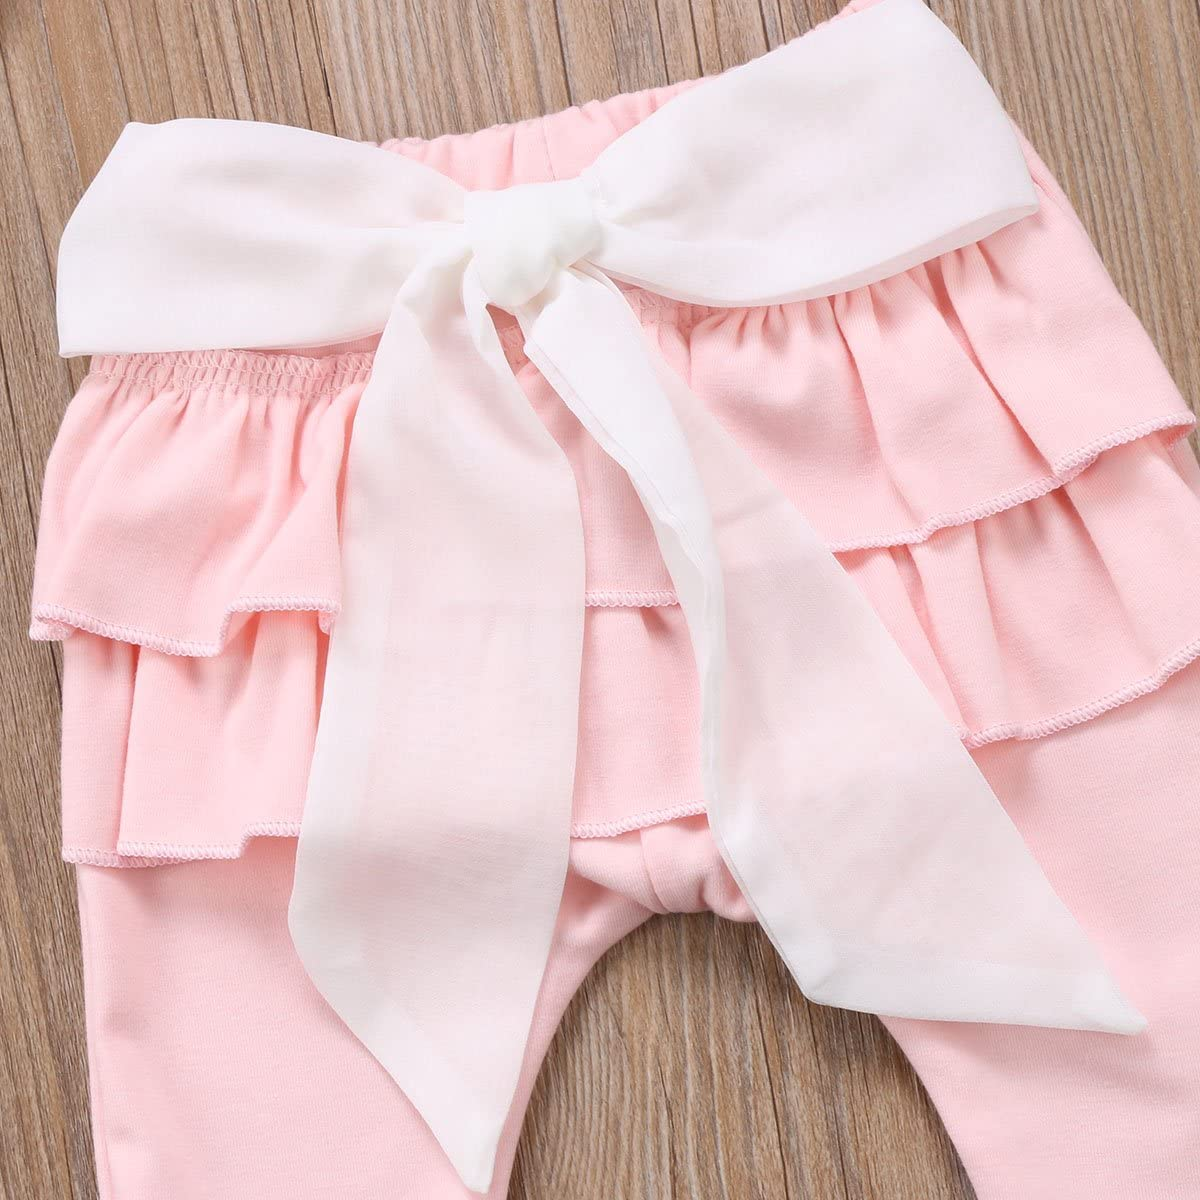 Toddler Newborn Baby Girls Loose Ruffle Lace Bowknot Harem Pants Leggings